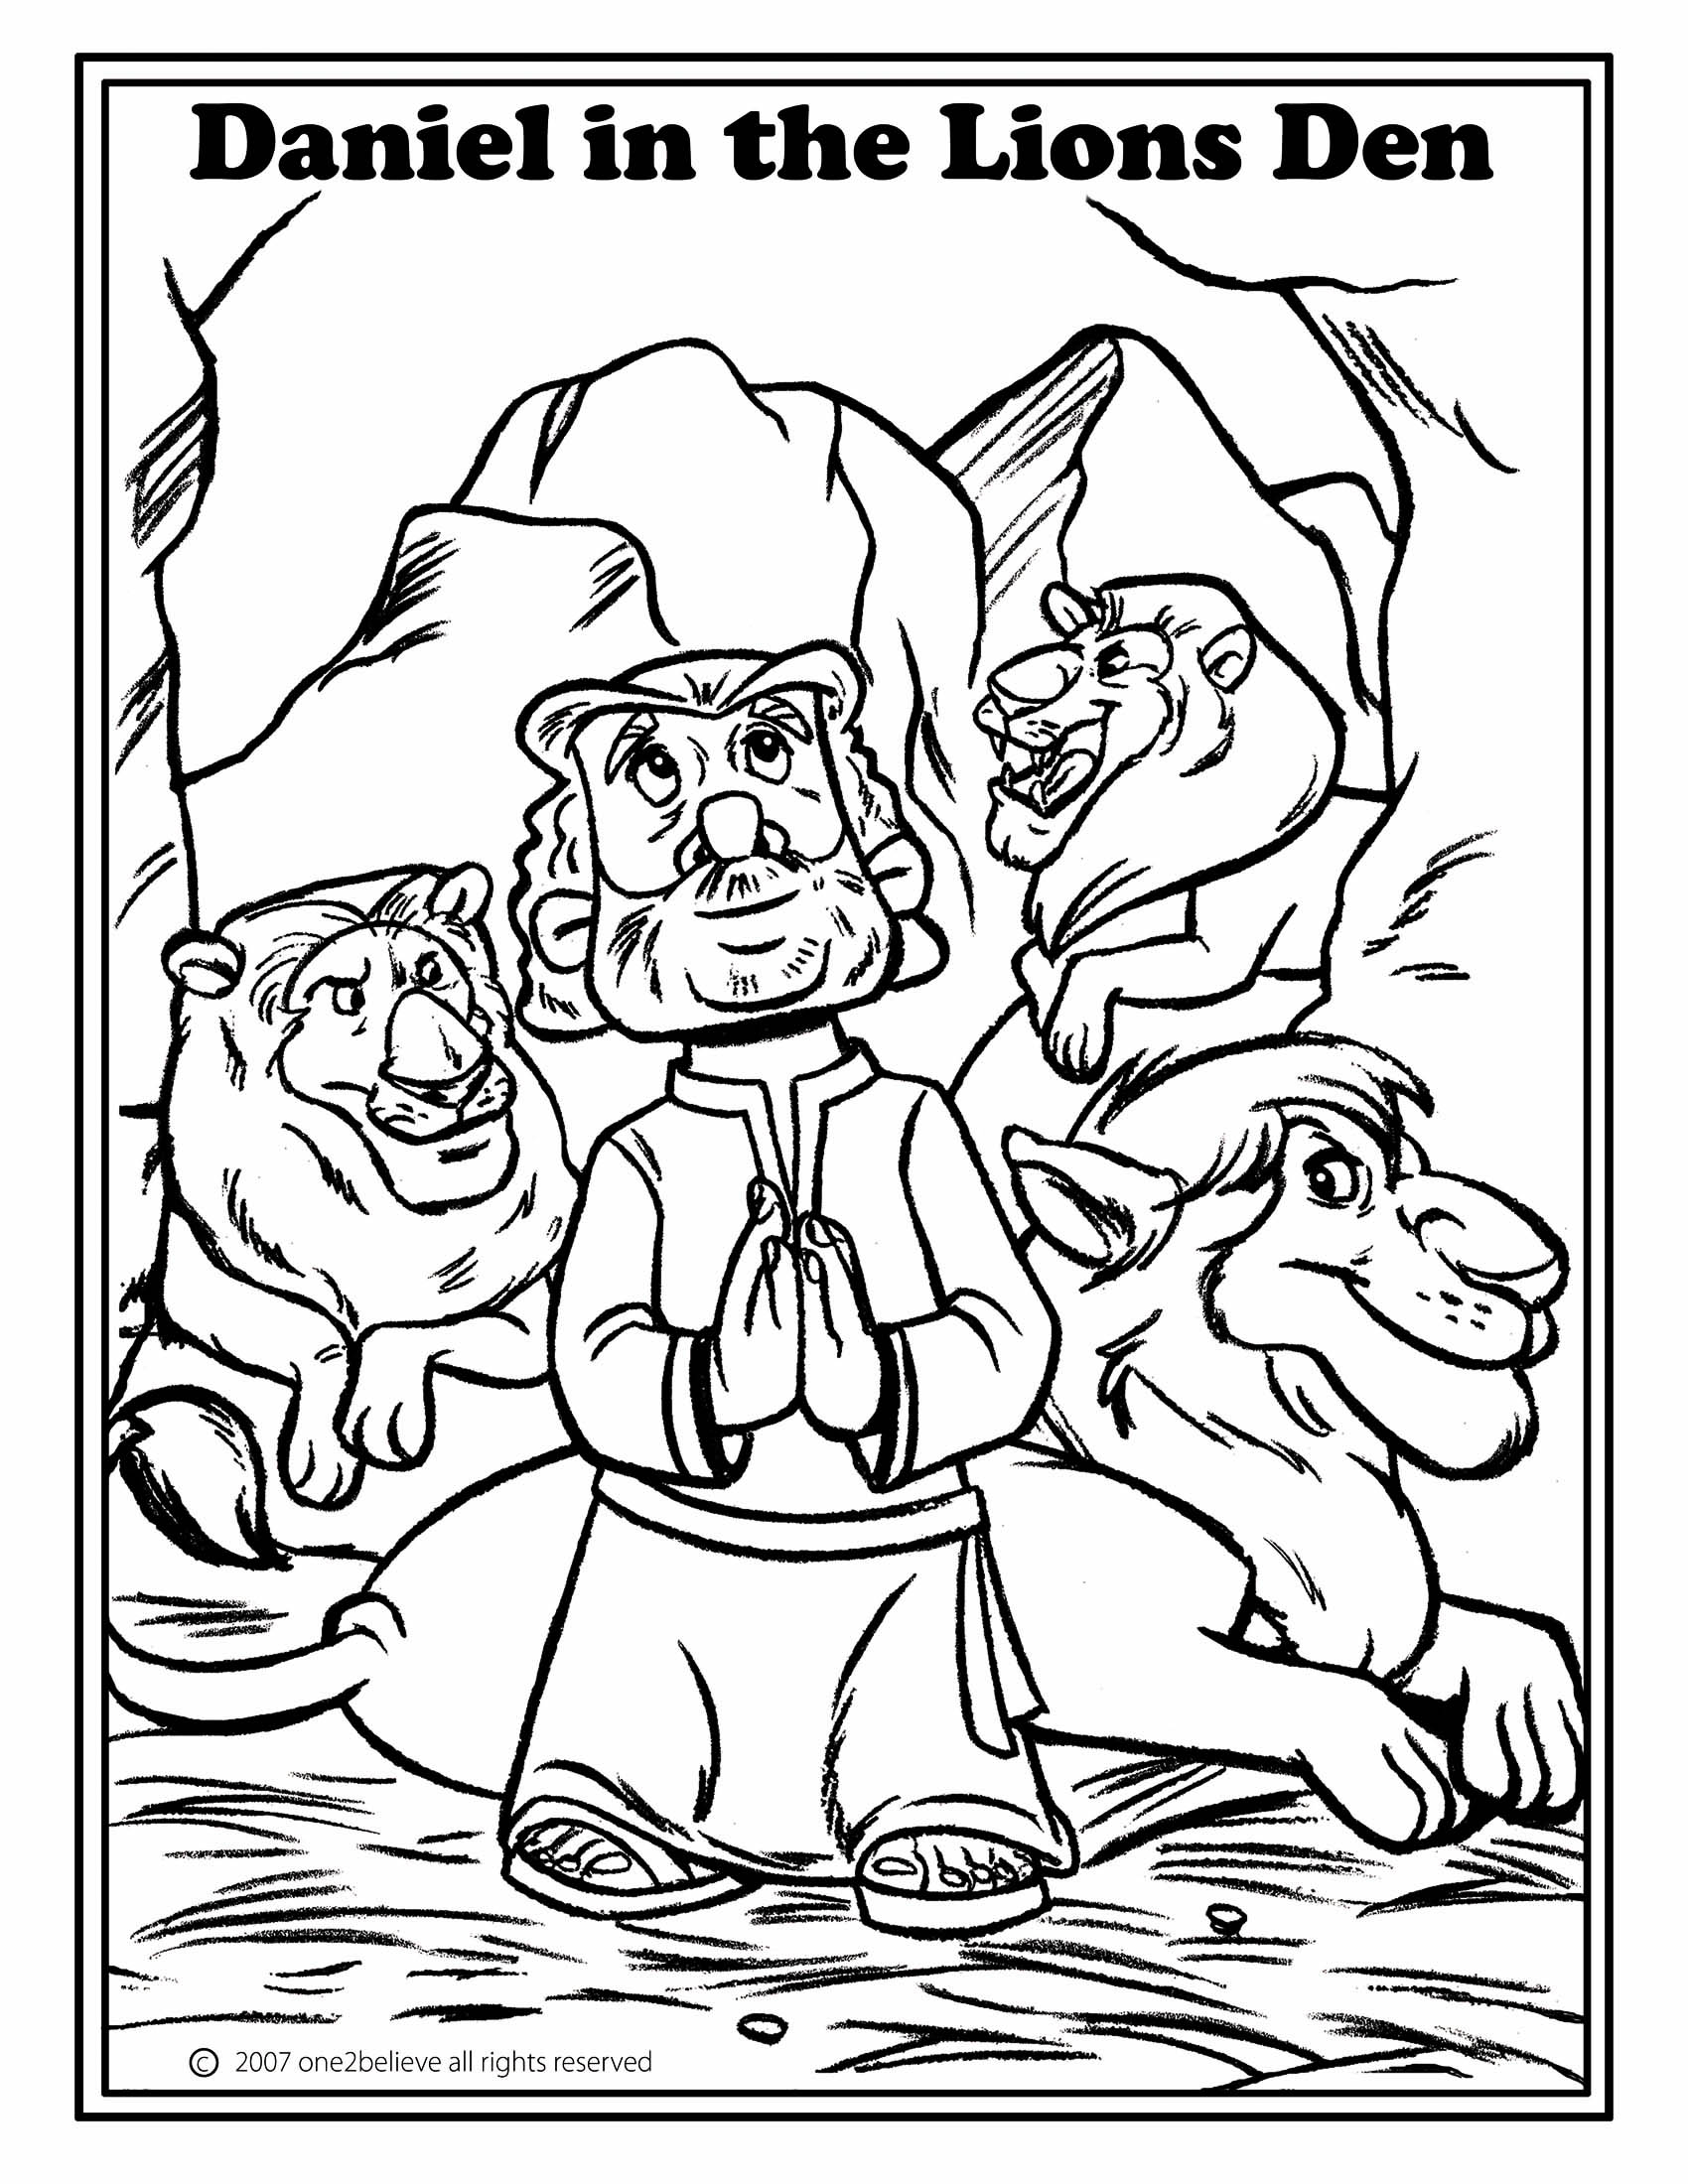 black and white bible coloring pages | Daniel In The Lion Den Coloring Pages - Coloring Home